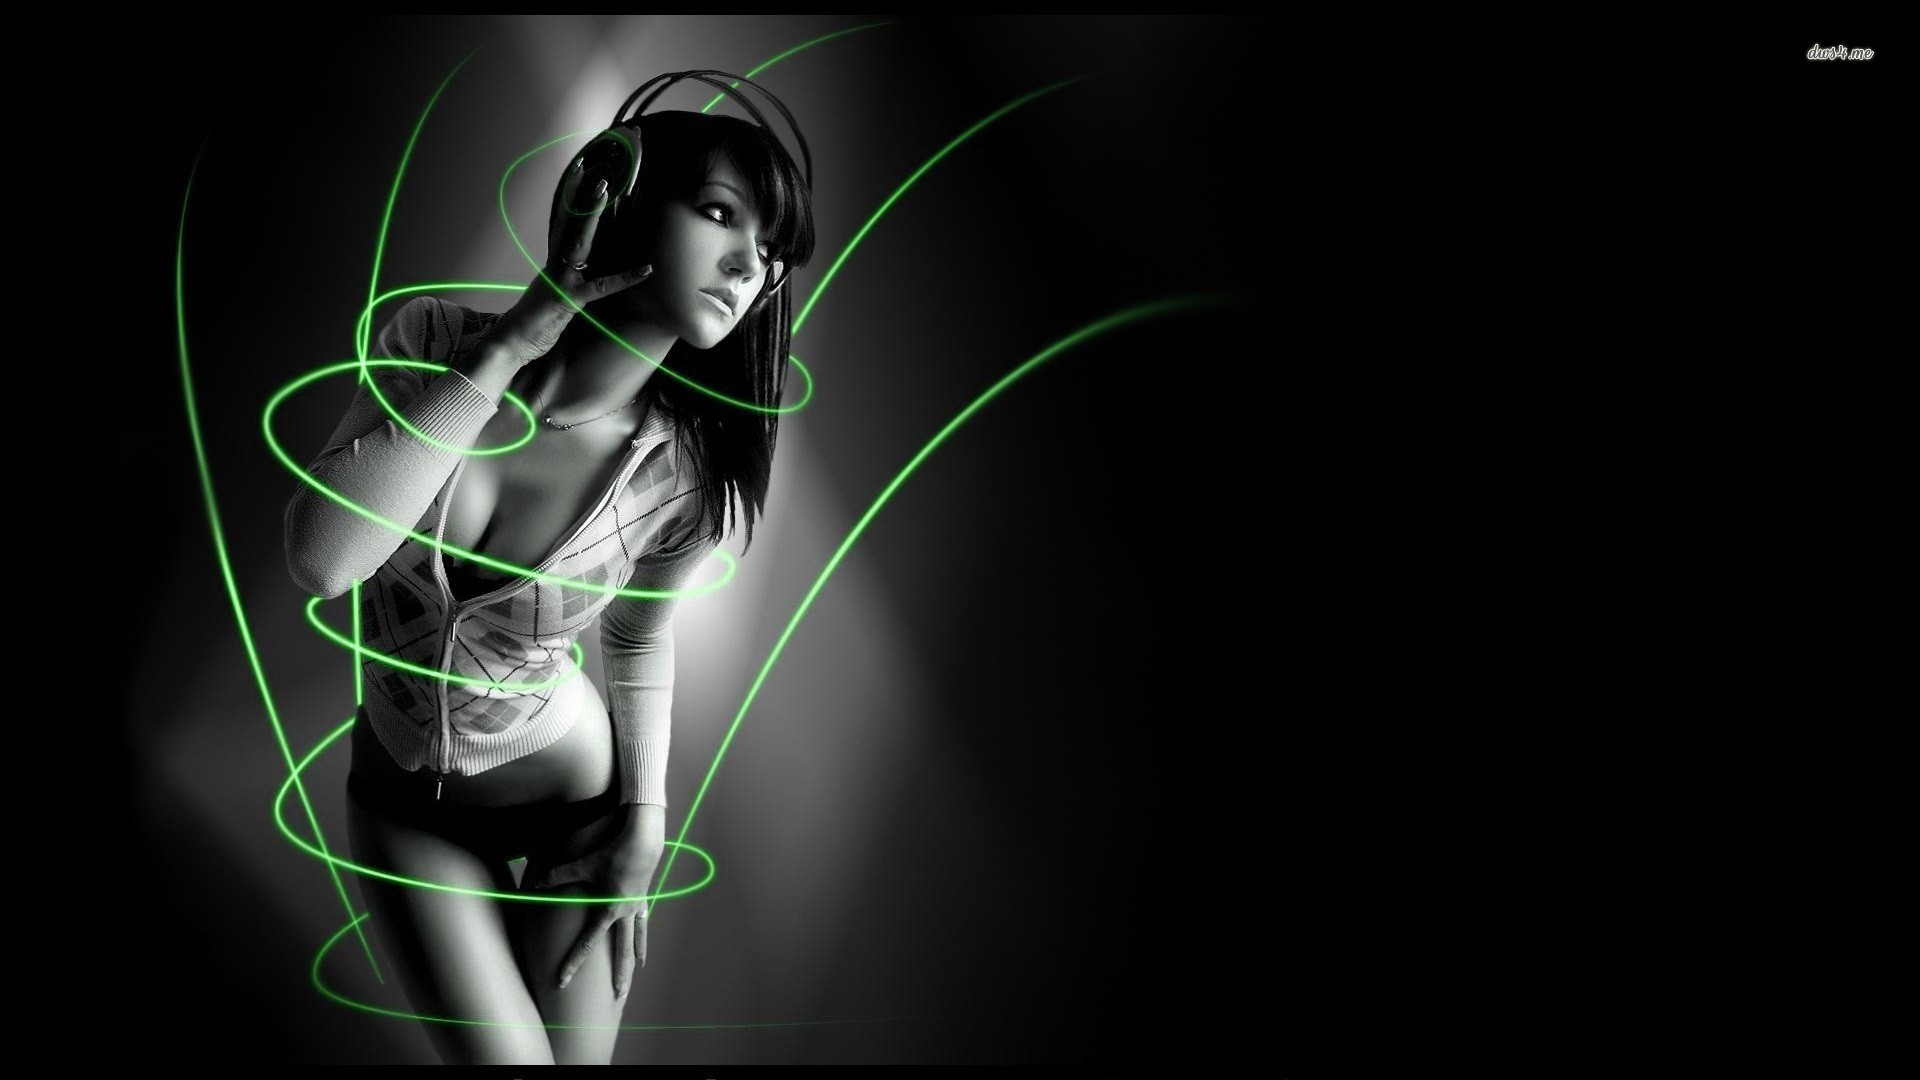 headphone wallpapers pictures images